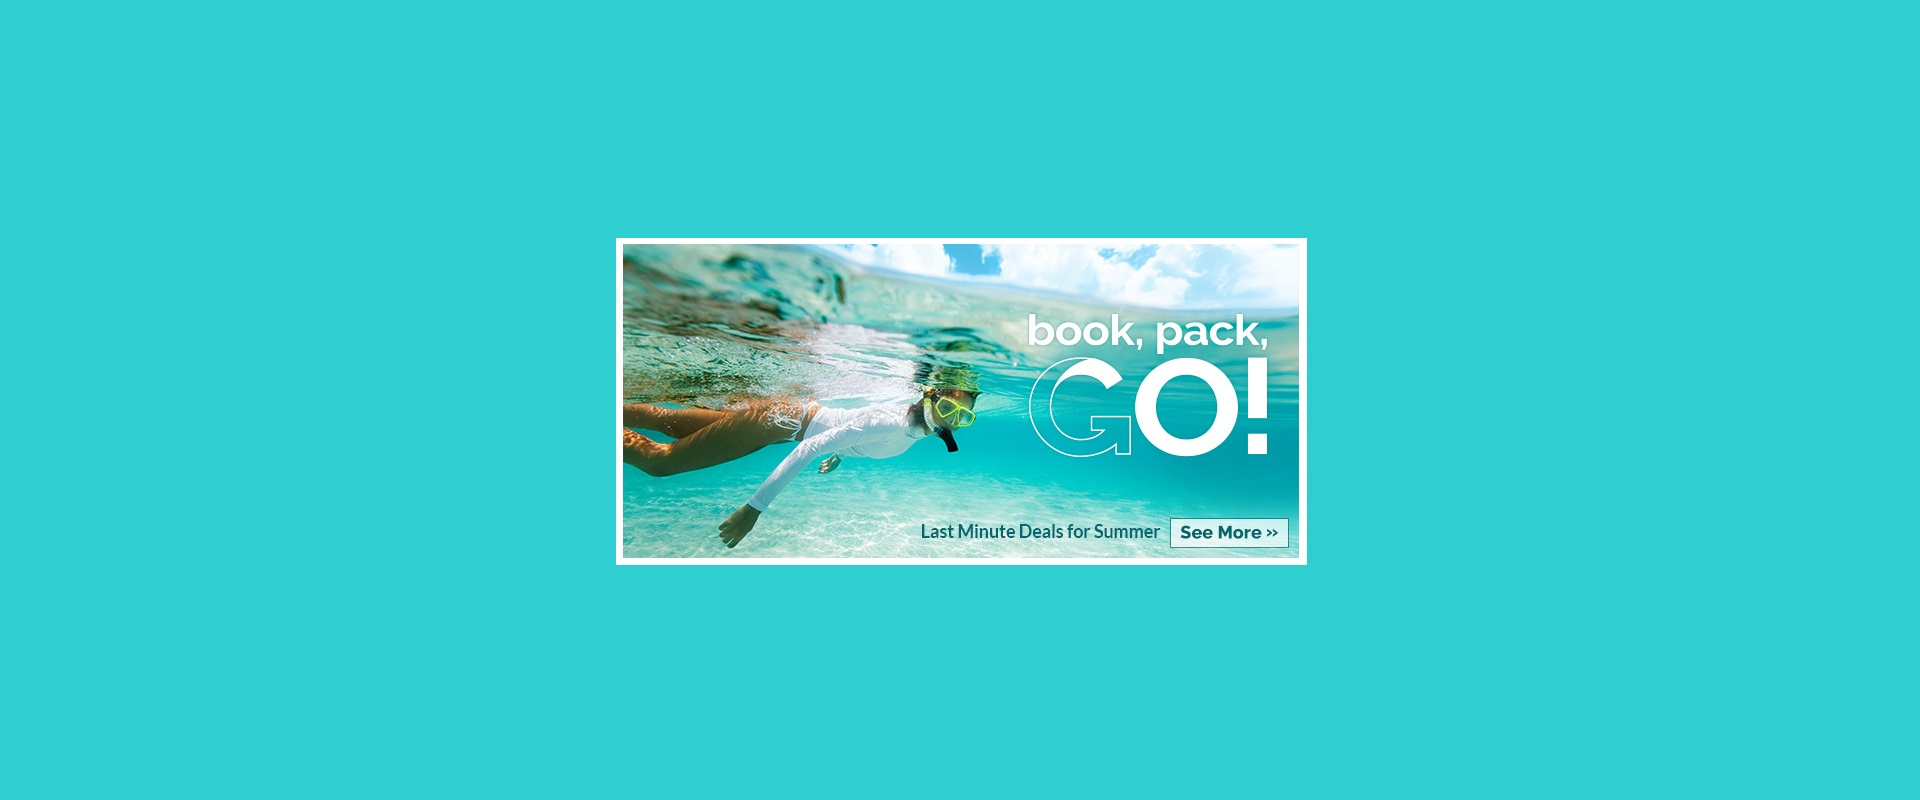 Book-Pack-Go-Last-Minute-Header